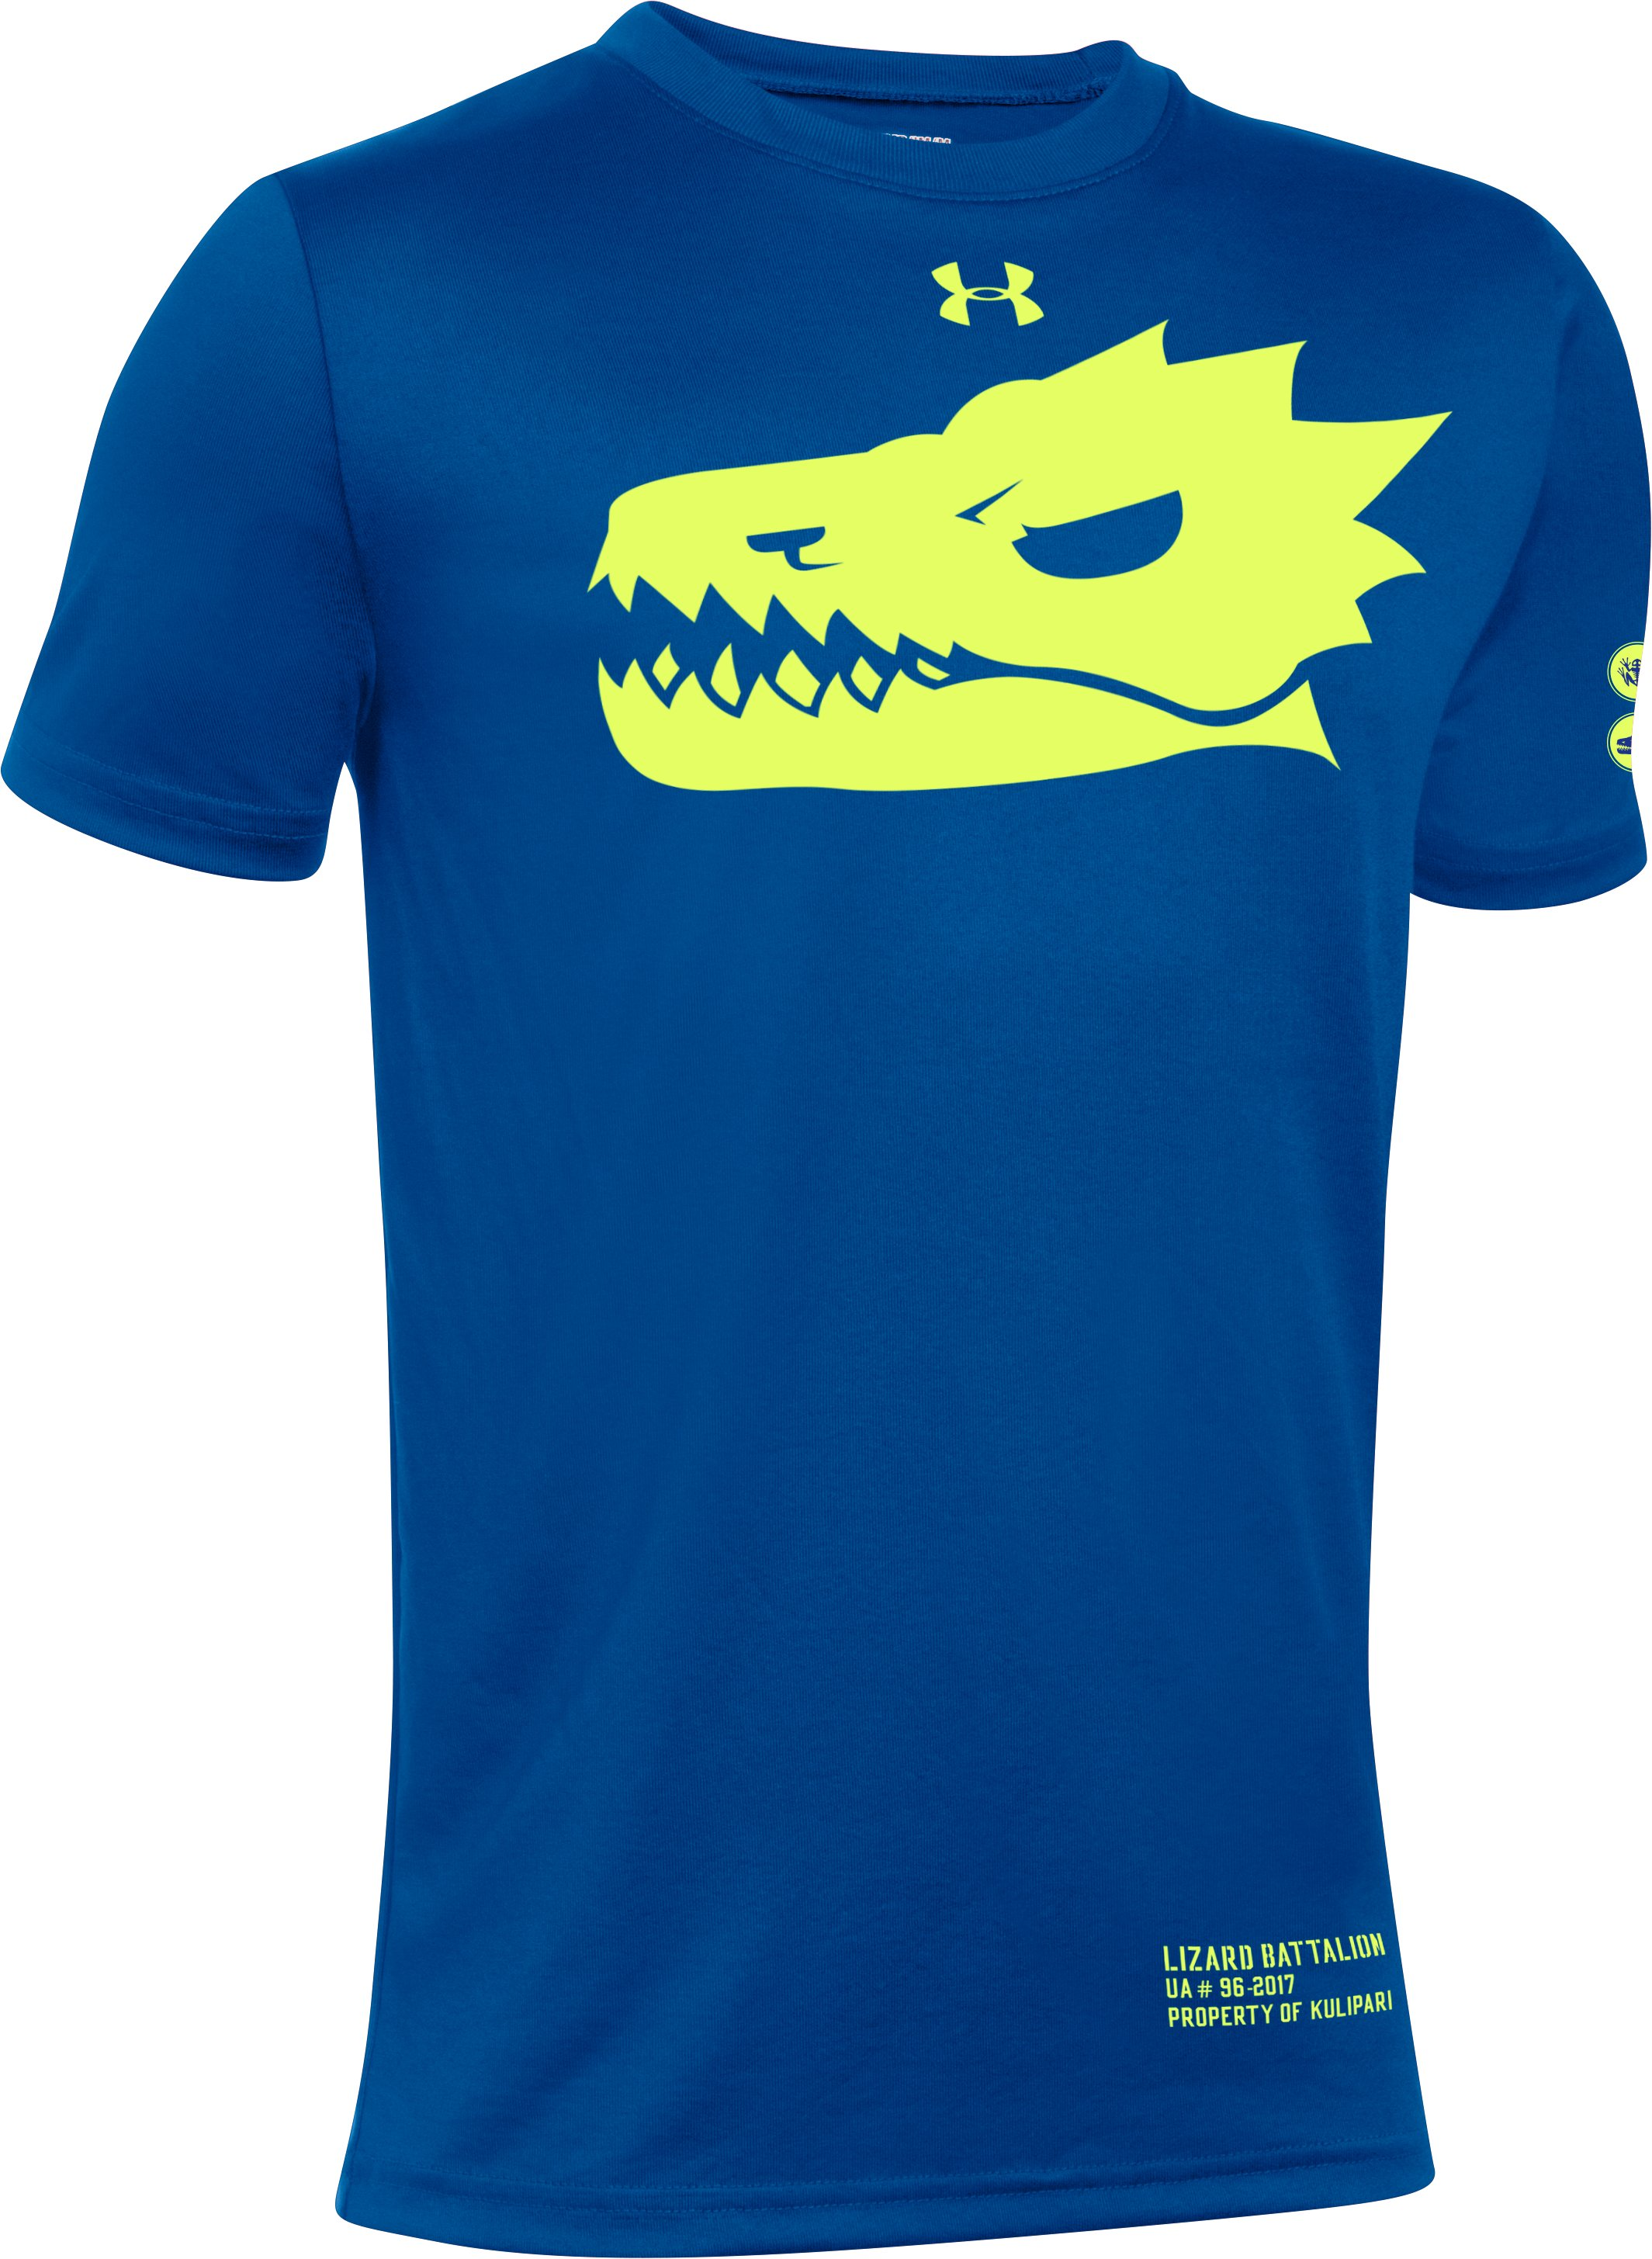 Kids' Kulipari UA Lizard Battalion T-Shirt, Royal